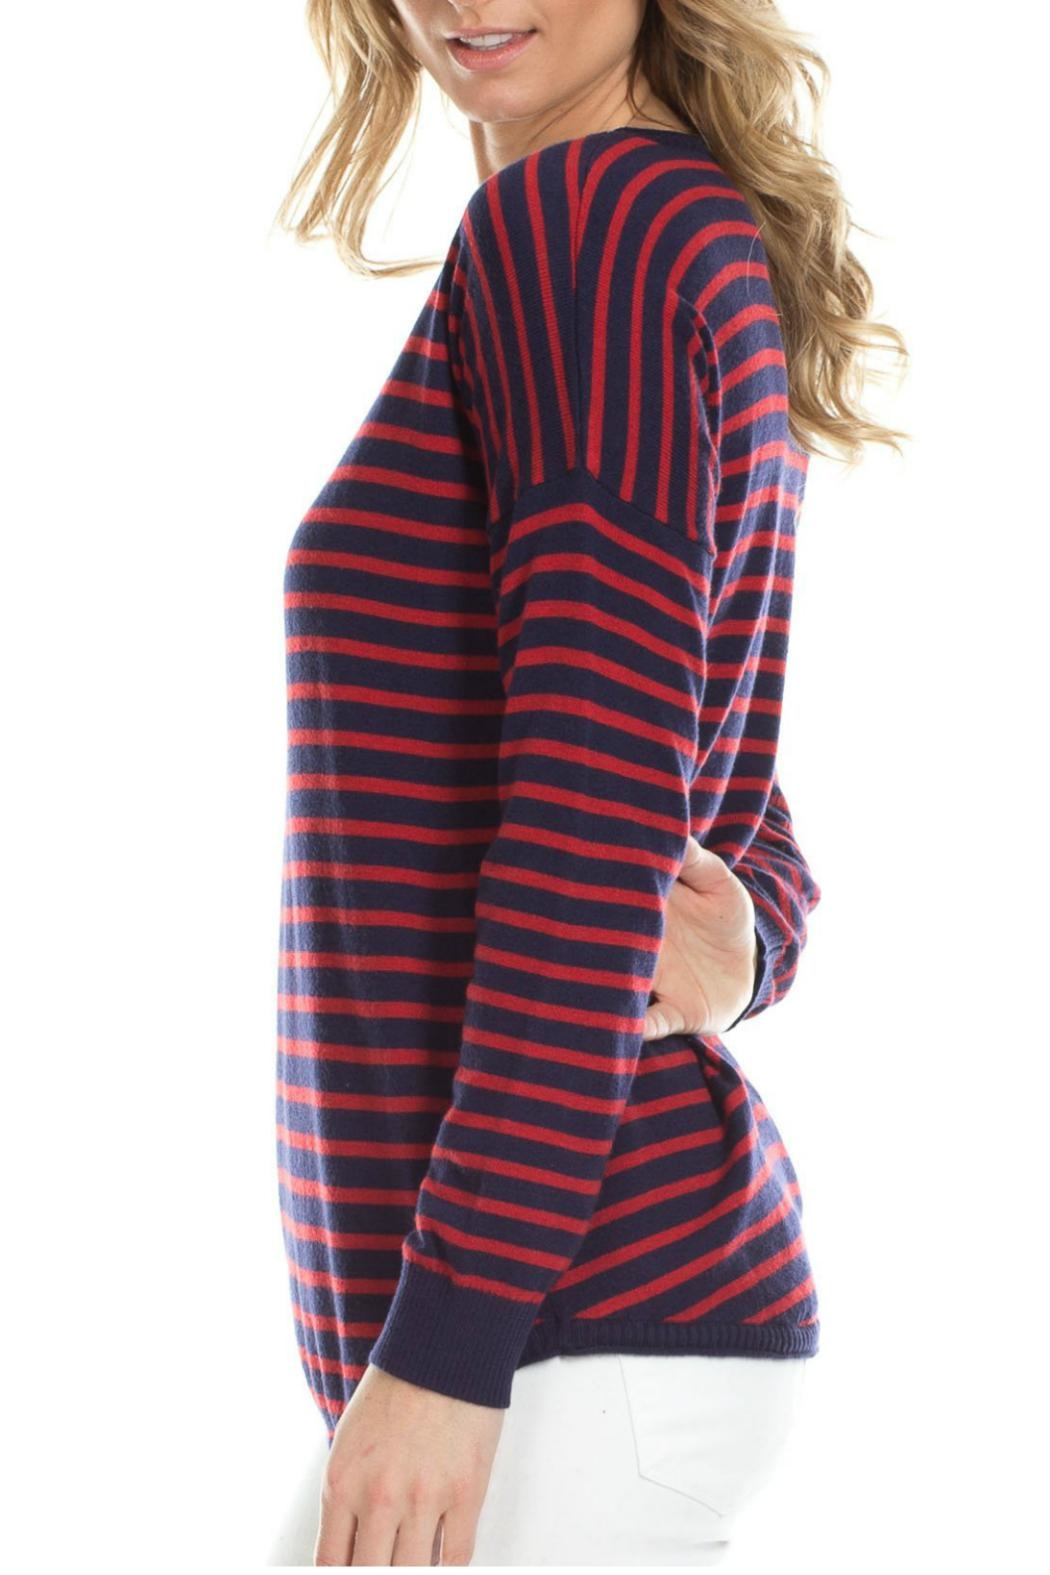 Duffield Lane Cashmere Blend Sweater - Side Cropped Image